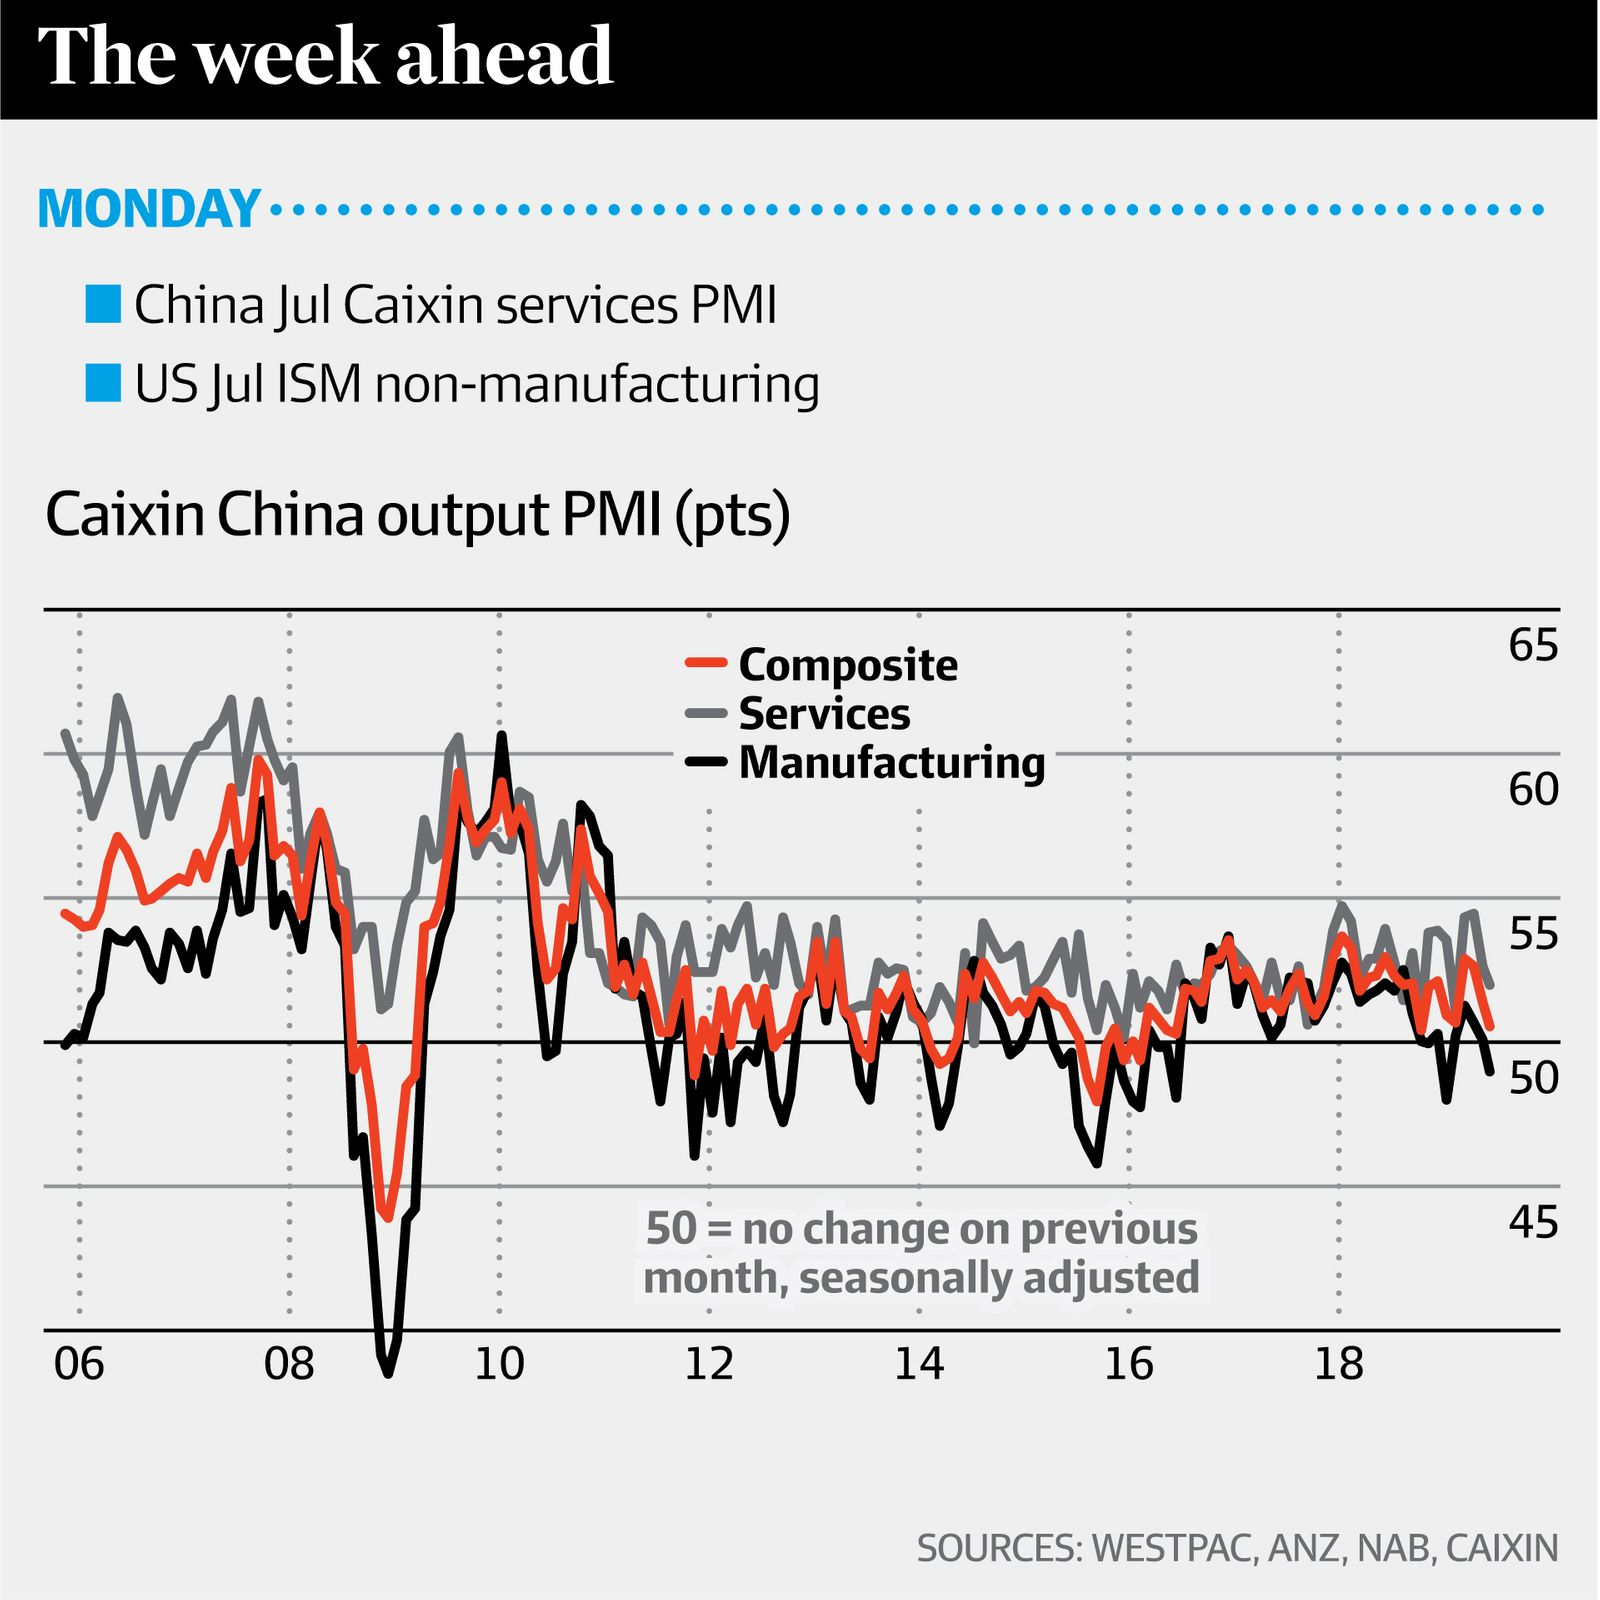 Caixin China output PMI (Westpac, ANZ, NAB, Caisin, AFR)